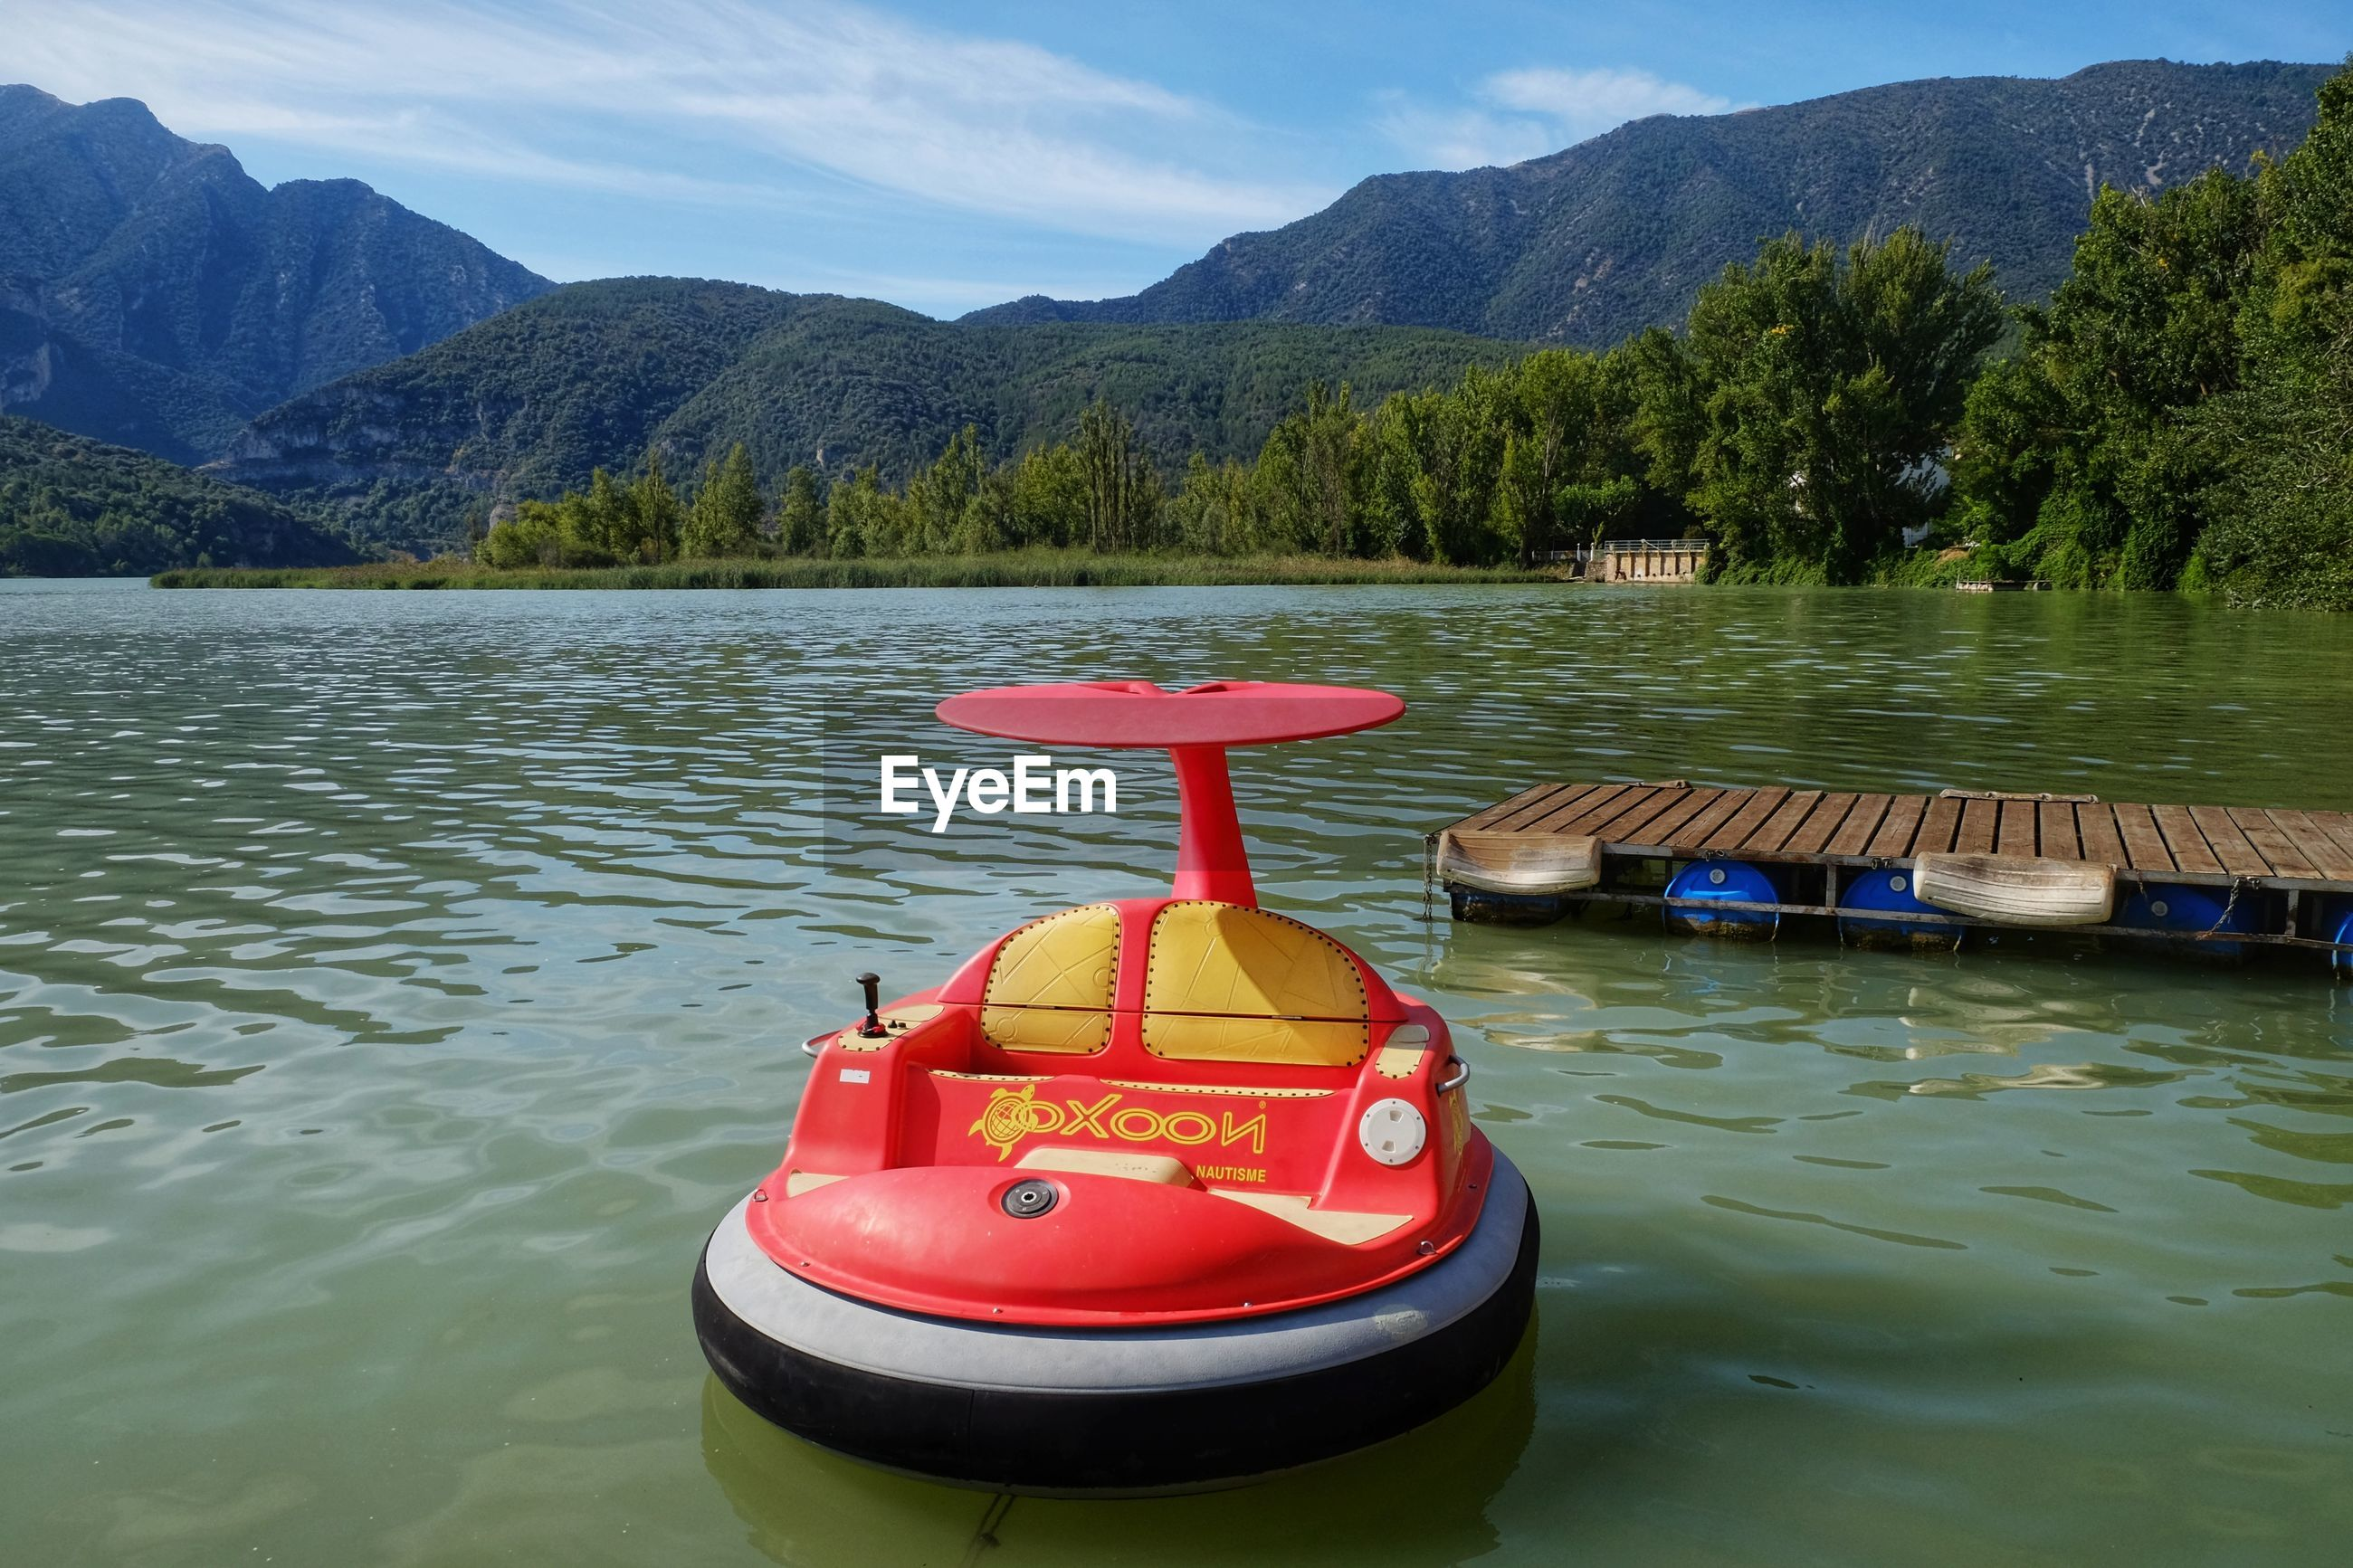 RED FLOATING ON LAKE AGAINST MOUNTAIN